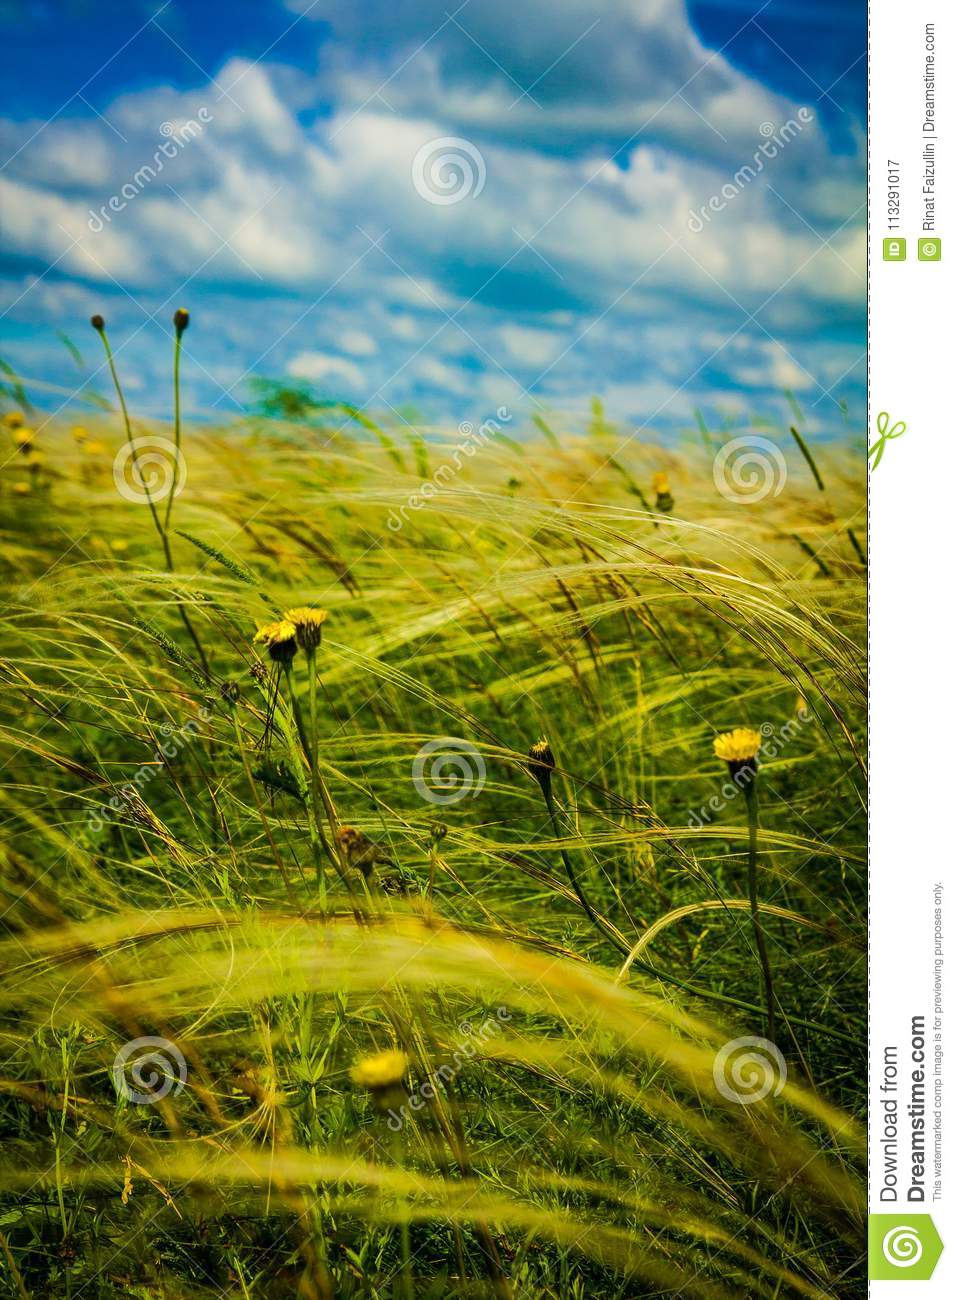 Field With Feather Grass And Yellow Flowers Stock Image Image Of